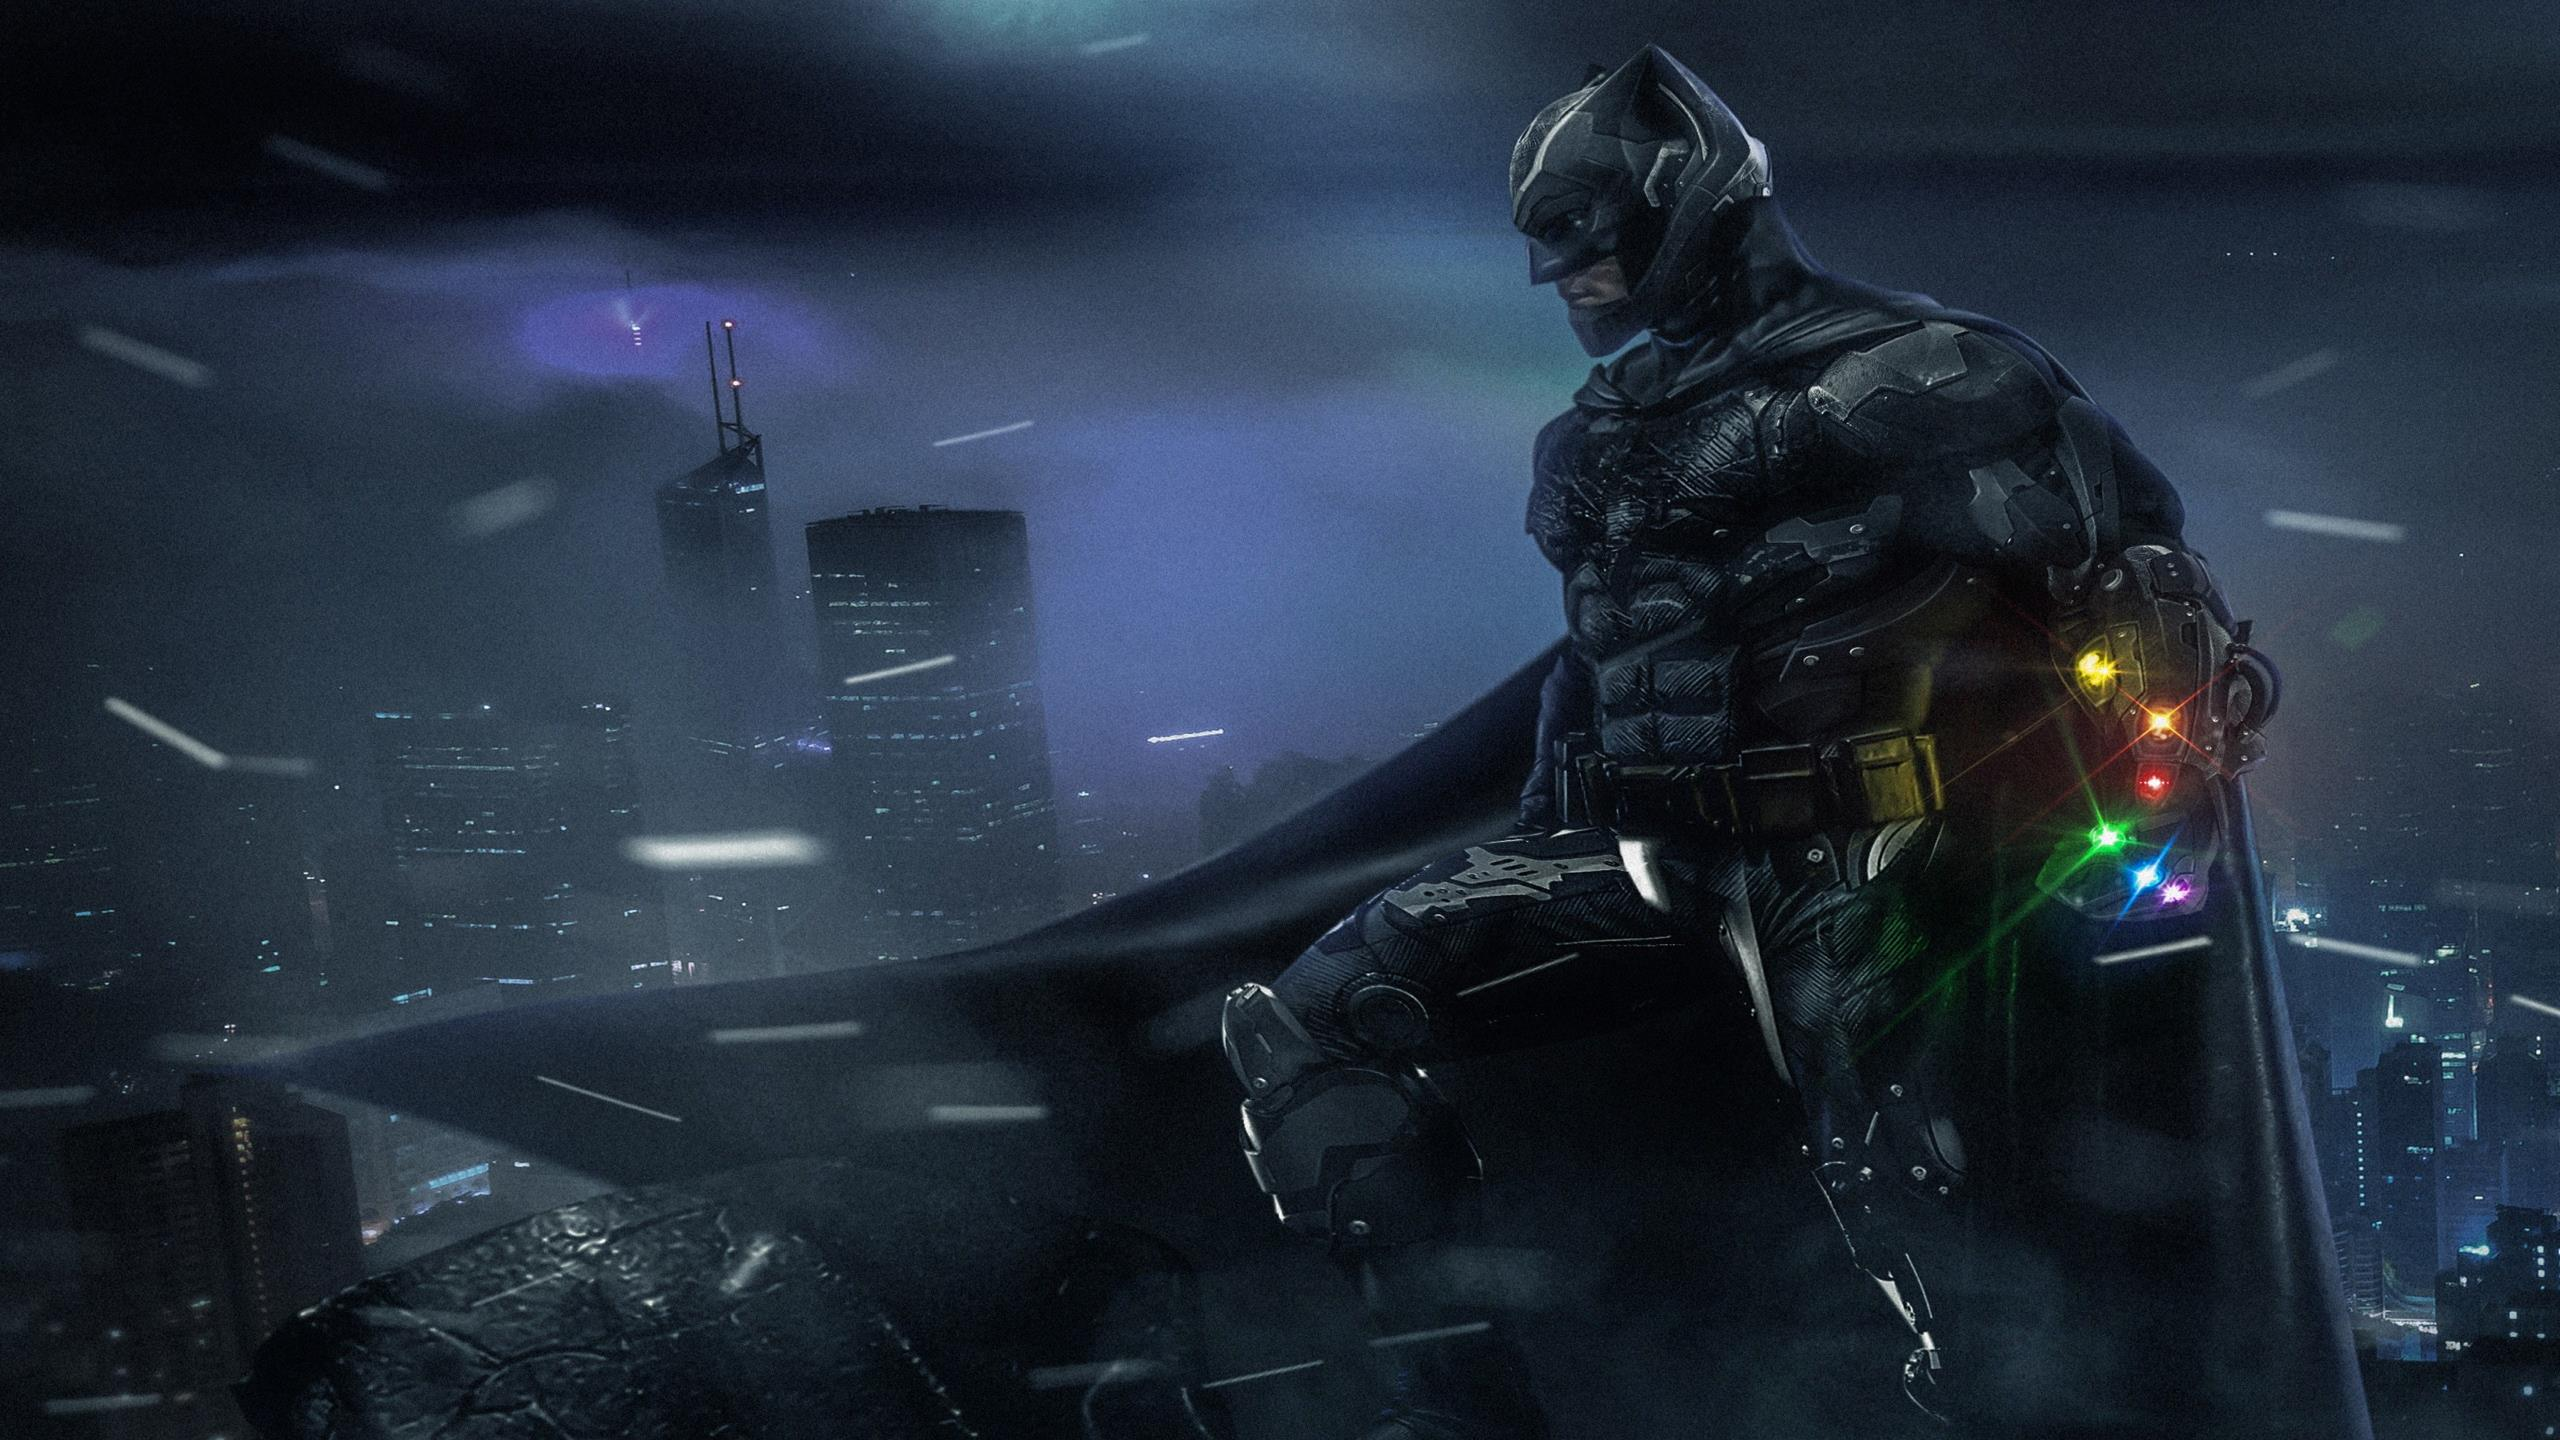 Batman 4k Wallpapers For Your Desktop Or Mobile Screen Free And Easy To Download